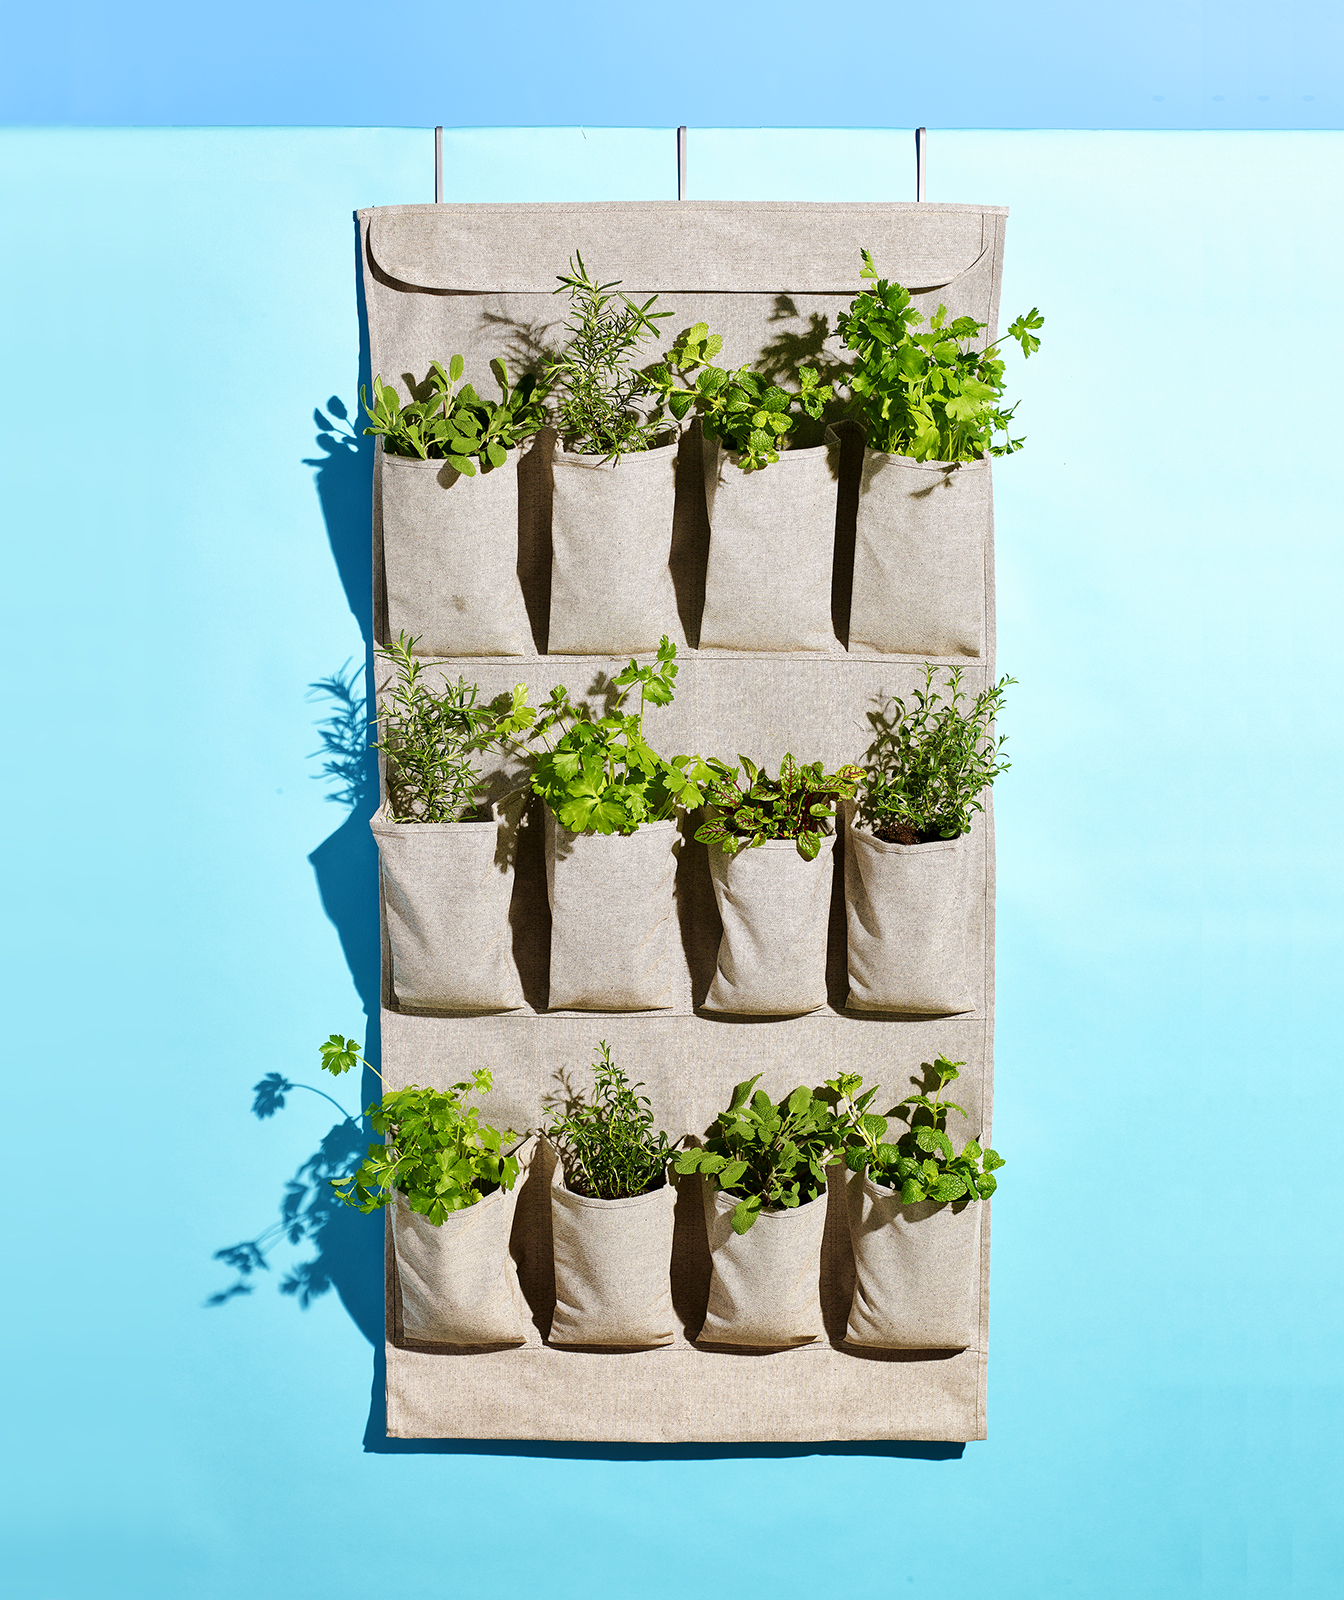 Shoe Organizer as Vertical Garden